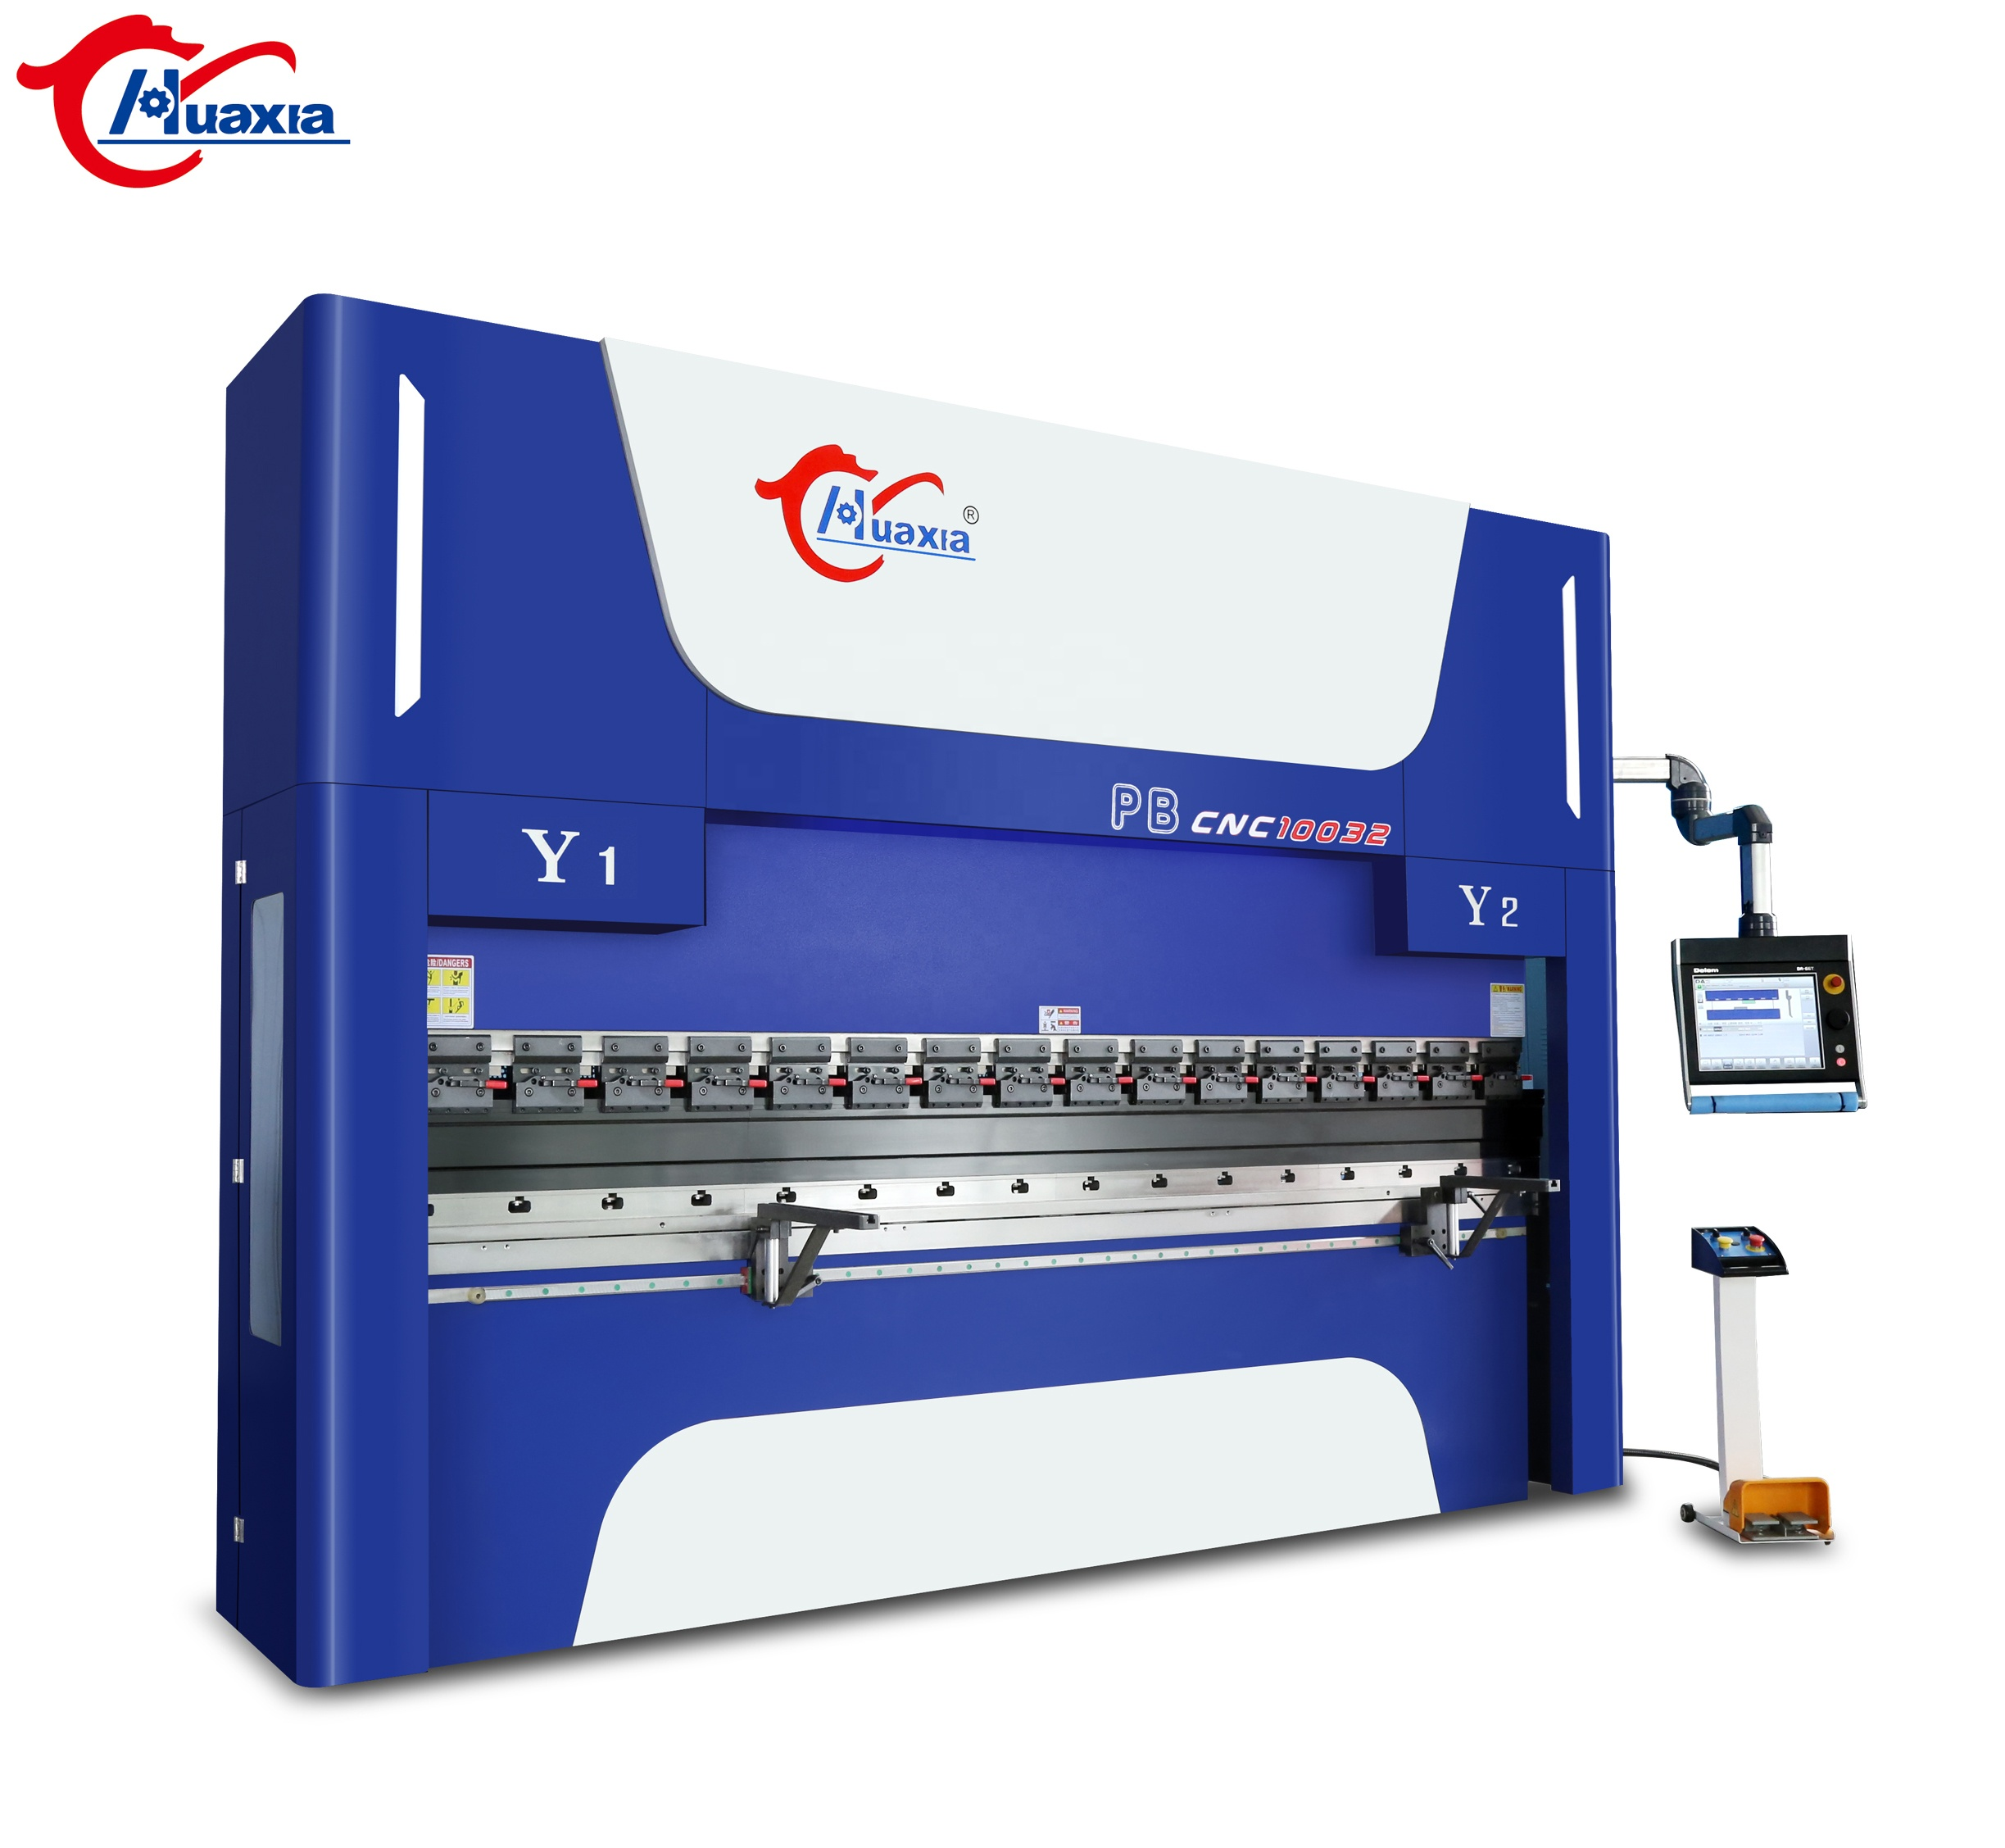 bending machine cnc pressbrake price <strong>X</strong> Y1 Y2 V axis